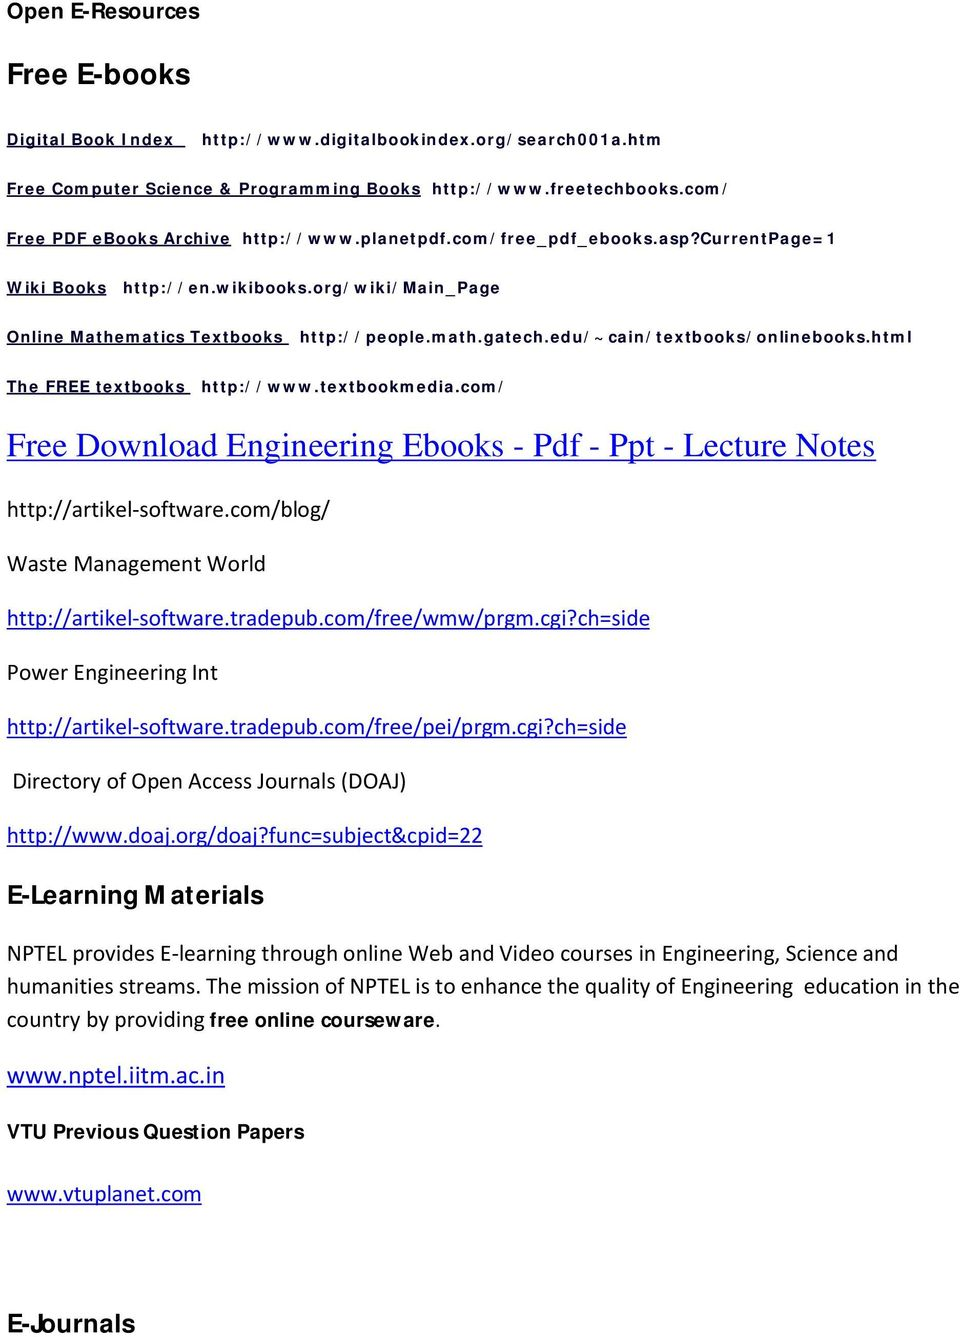 Free Download Engineering Ebooks - Pdf - Ppt - Lecture Notes - PDF